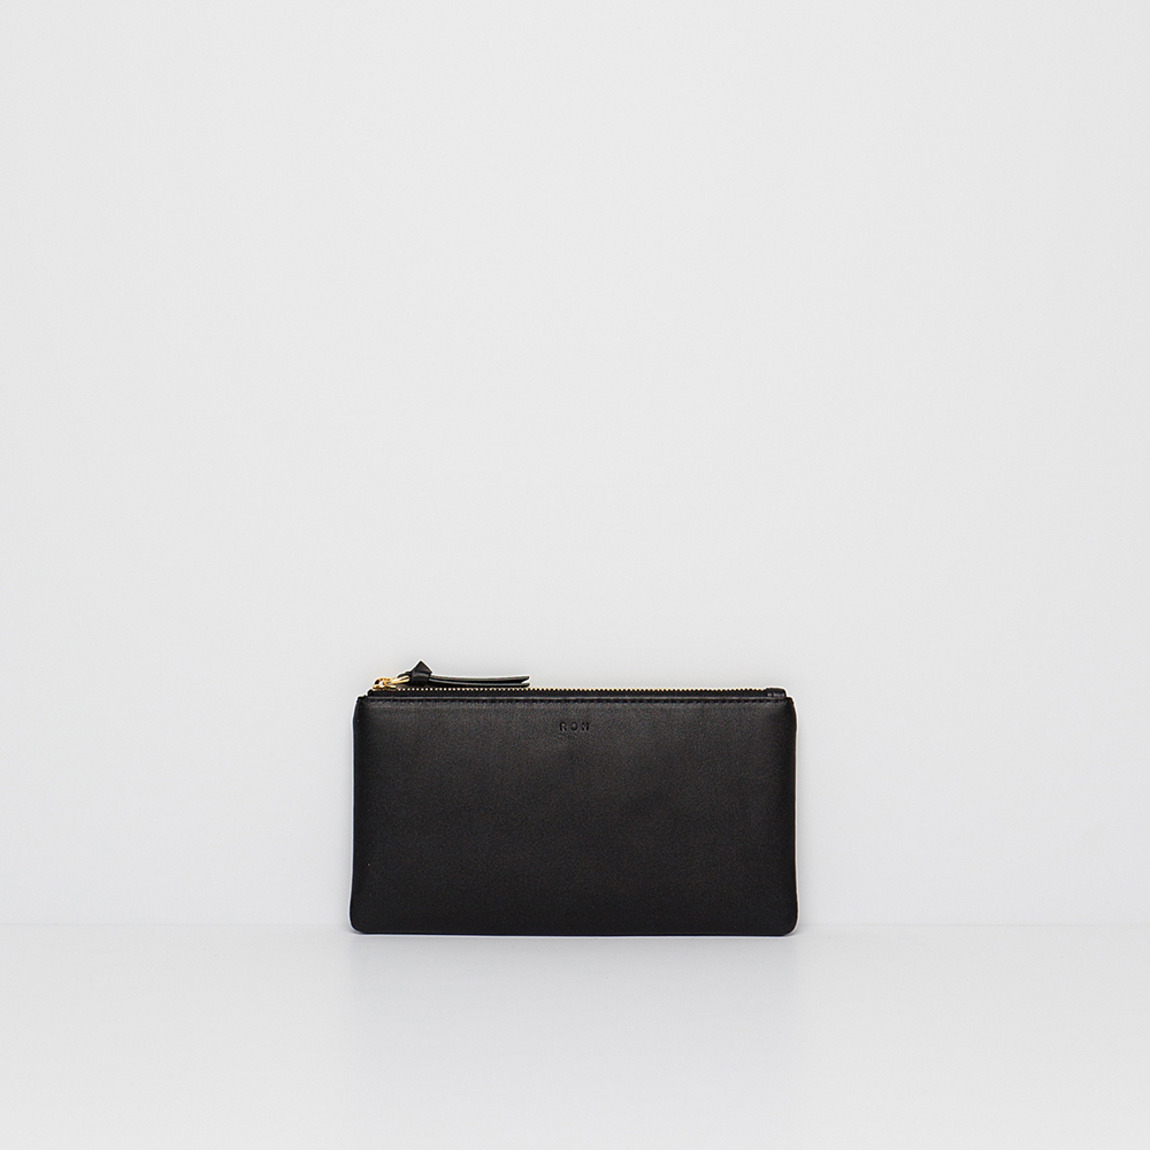 Basic Wallet Objet 2 Black